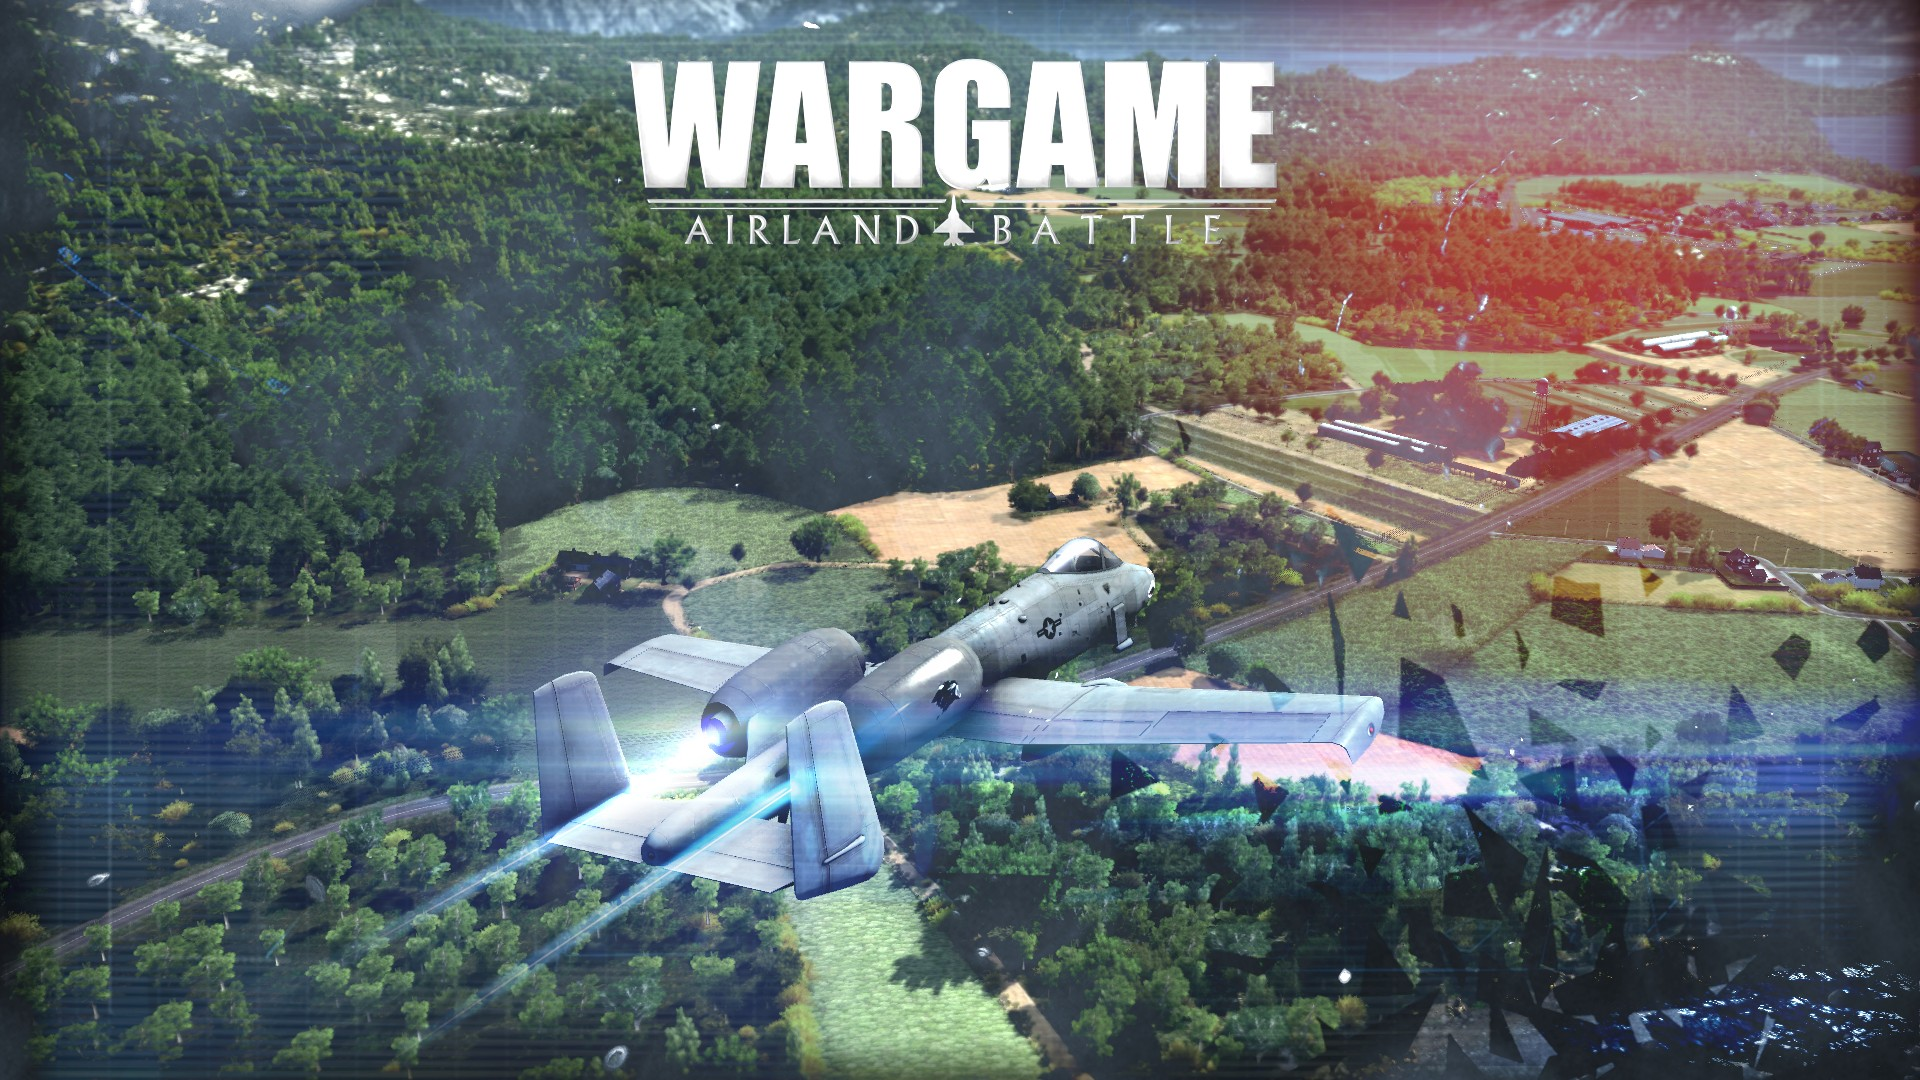 Lagzero Analiza: Wargame: Airland Battle [Review estratégica]